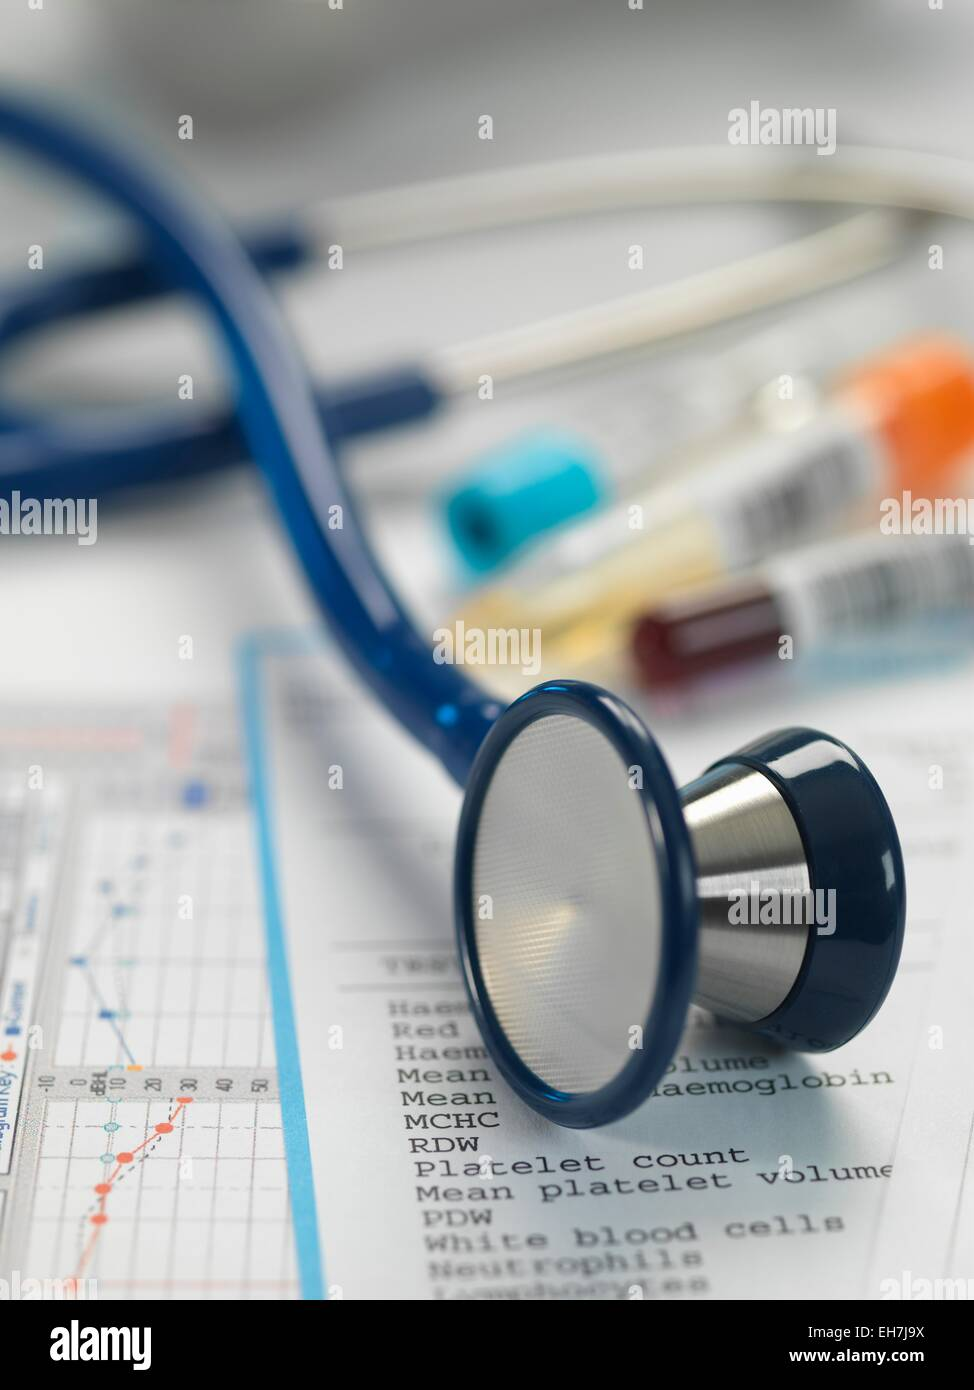 Stethoscope and paperwork - Stock Image